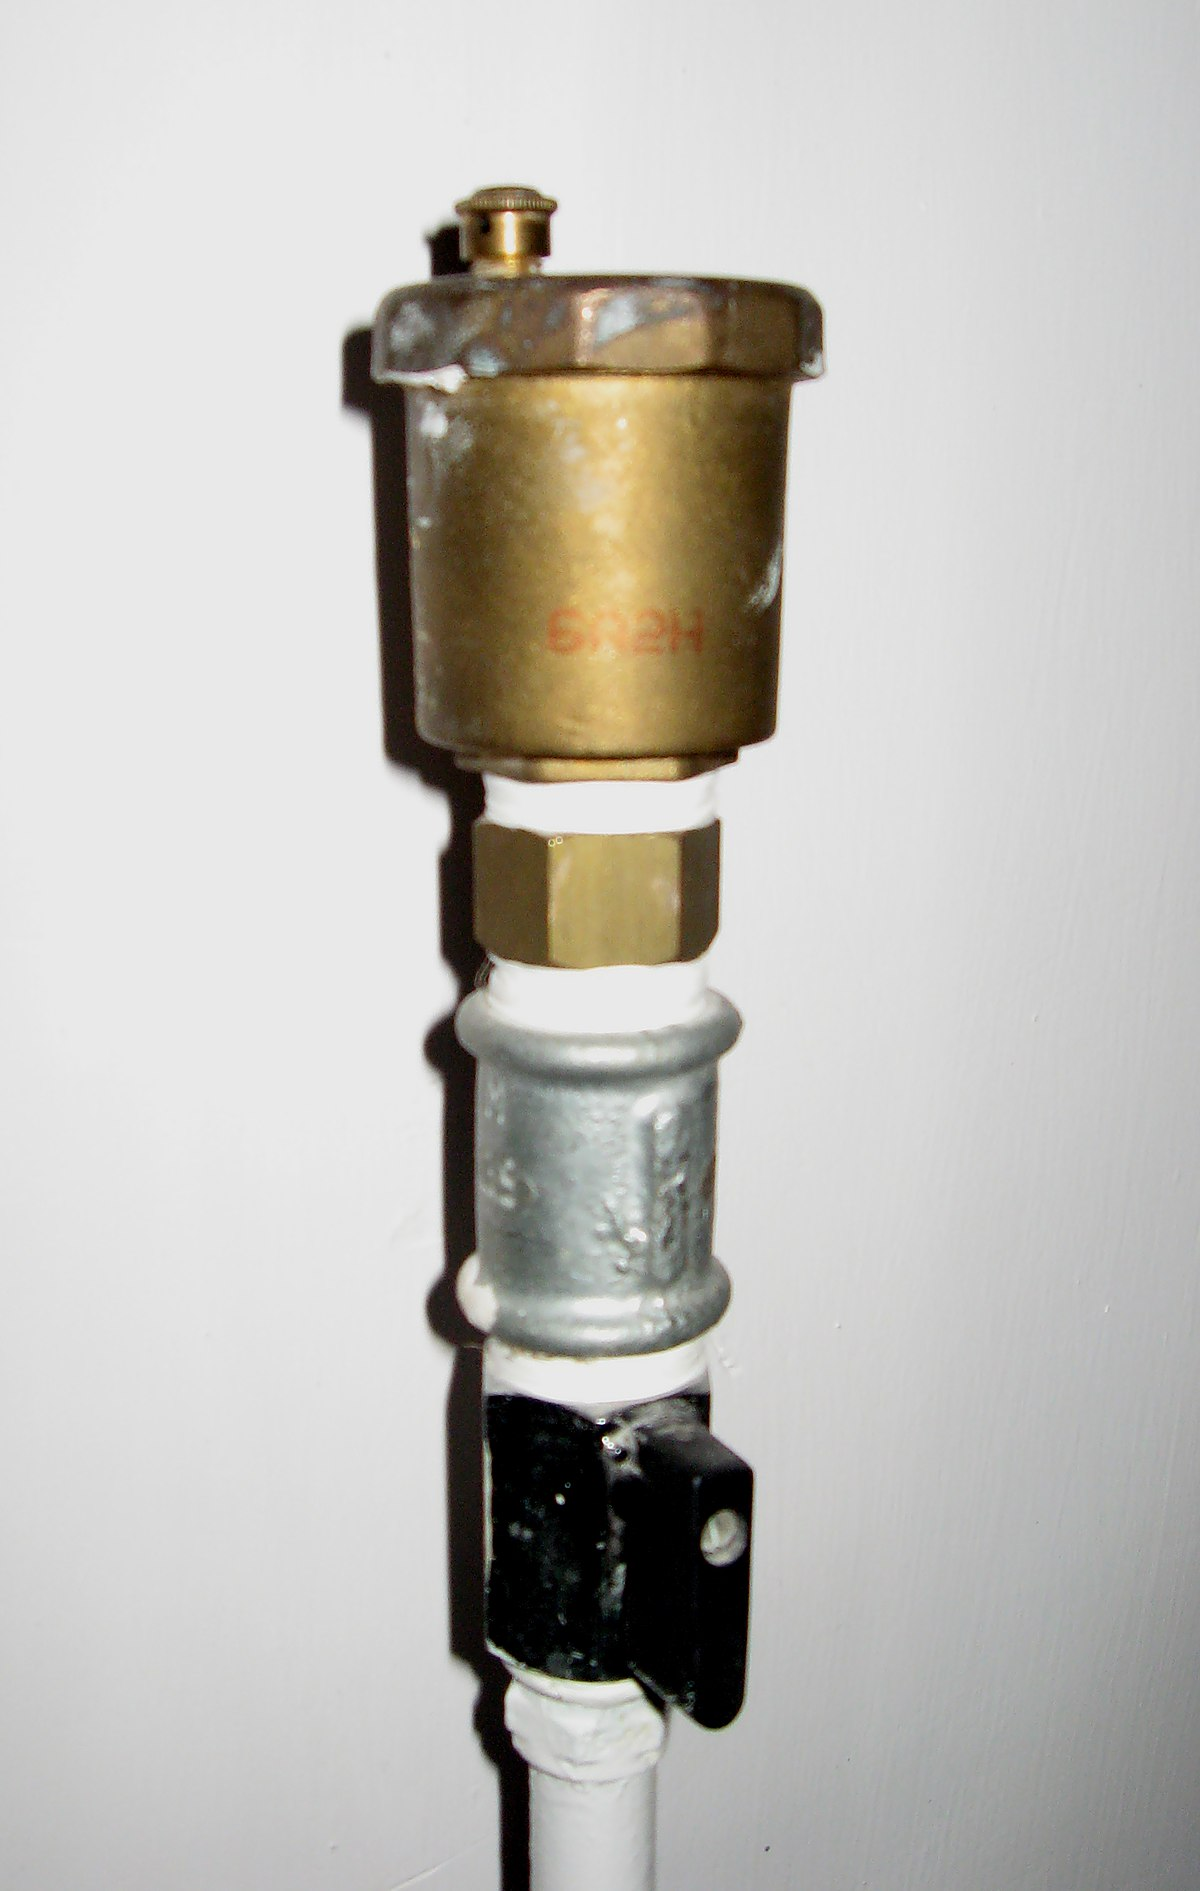 Automatic Bleeding Valve Wikipedia